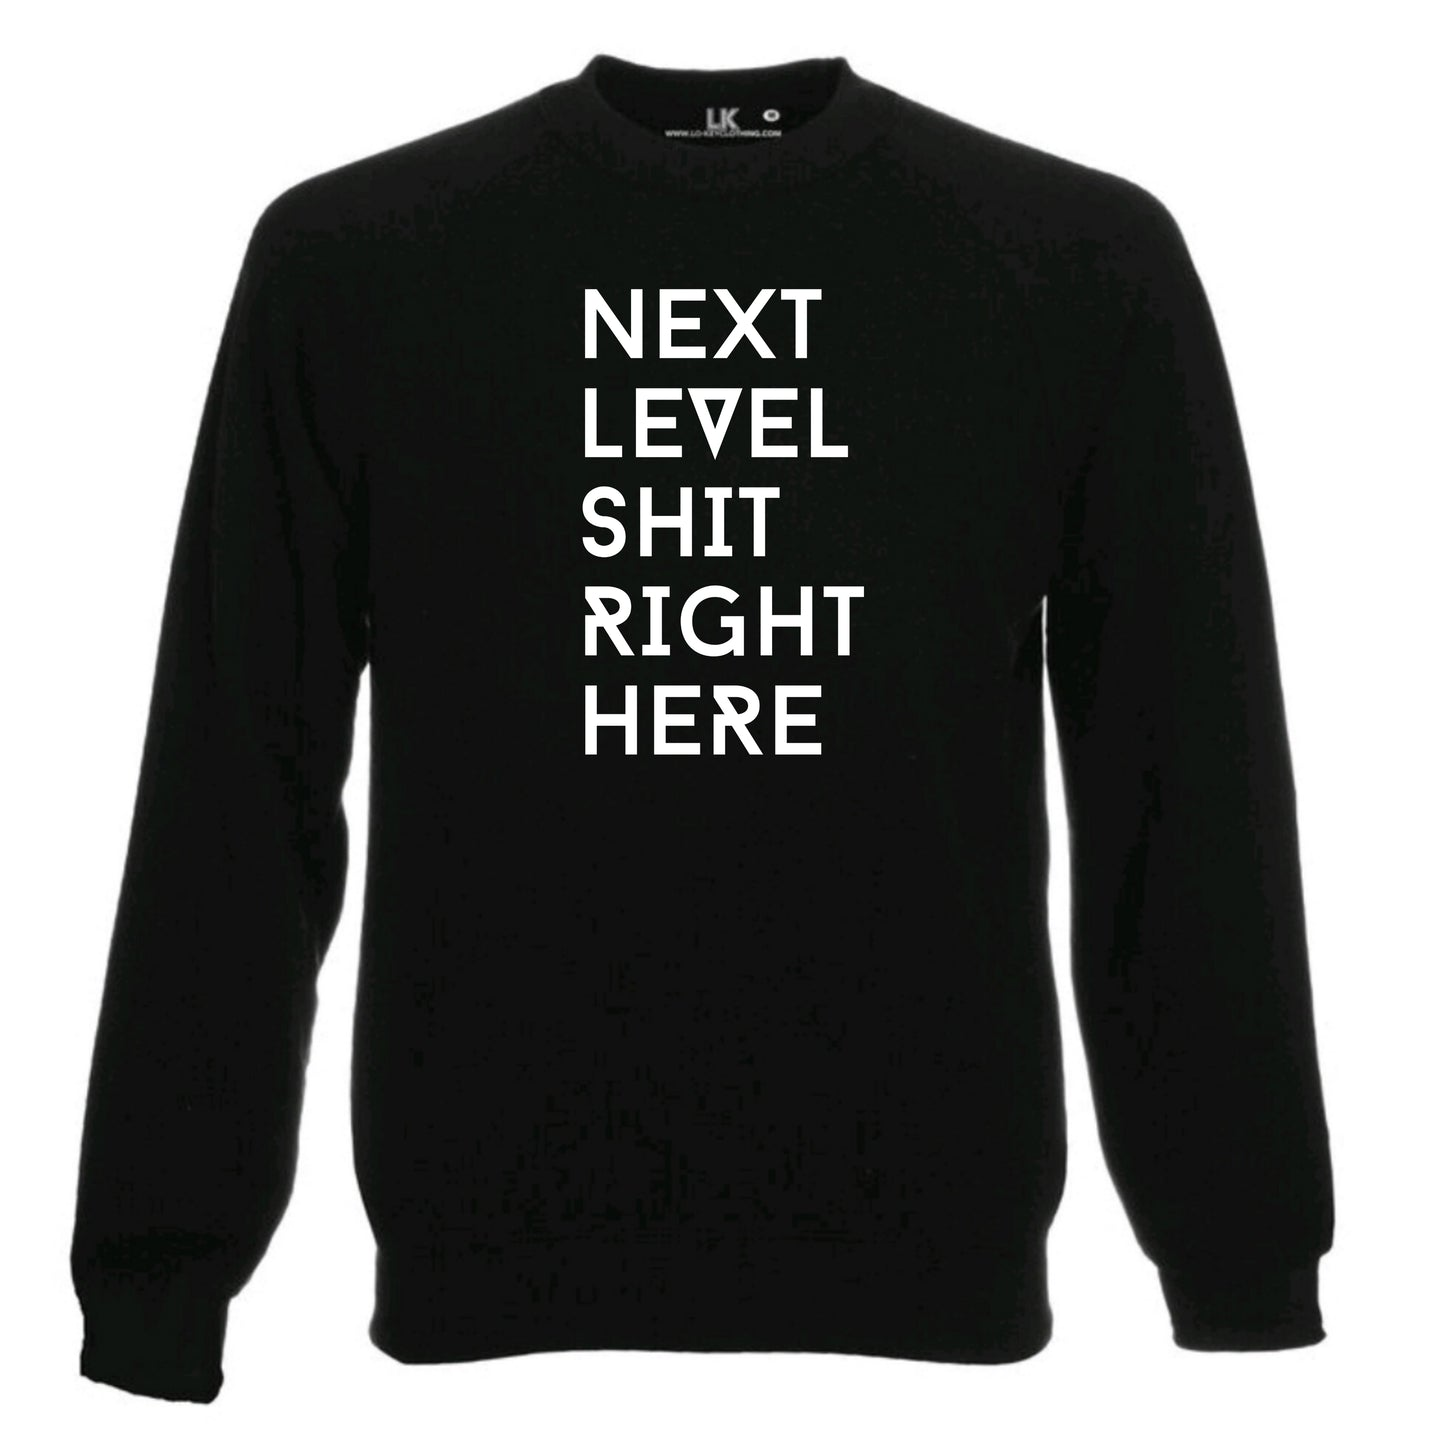 Next Level Shit Right Here Sweatshirt black